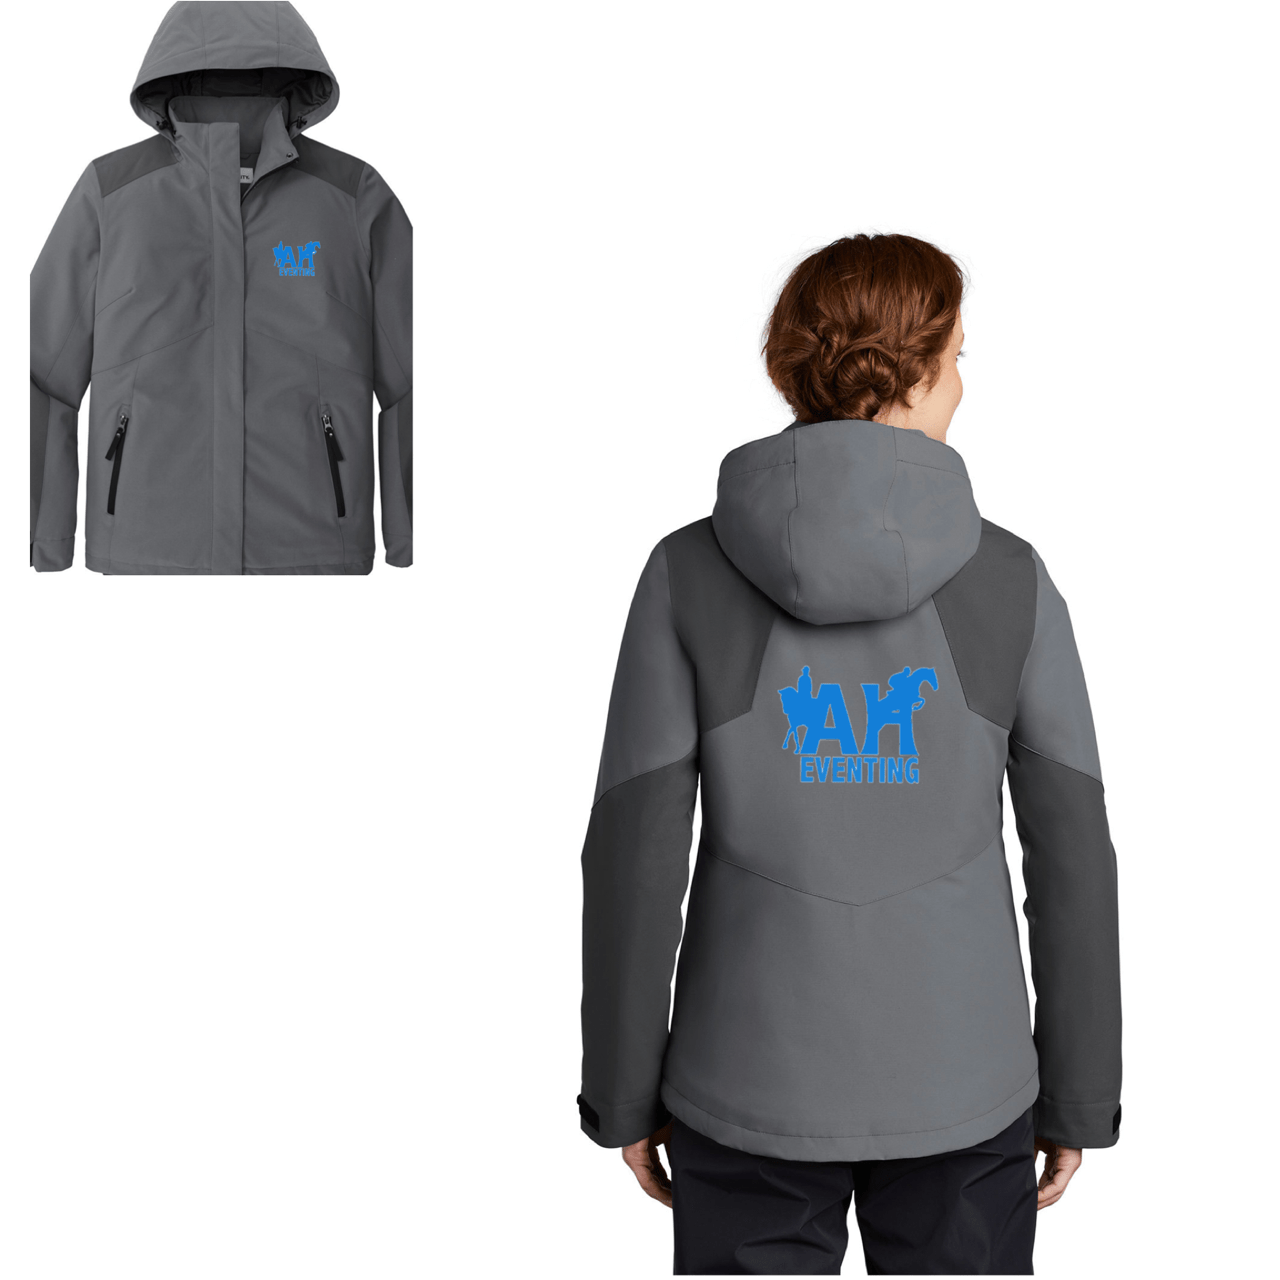 Equestrian Team Apparel Custom Jacket AH Eventing Hooded Jacket equestrian team apparel online tack store mobile tack store custom farm apparel custom show stable clothing equestrian lifestyle horse show clothing riding clothes horses equestrian tack store